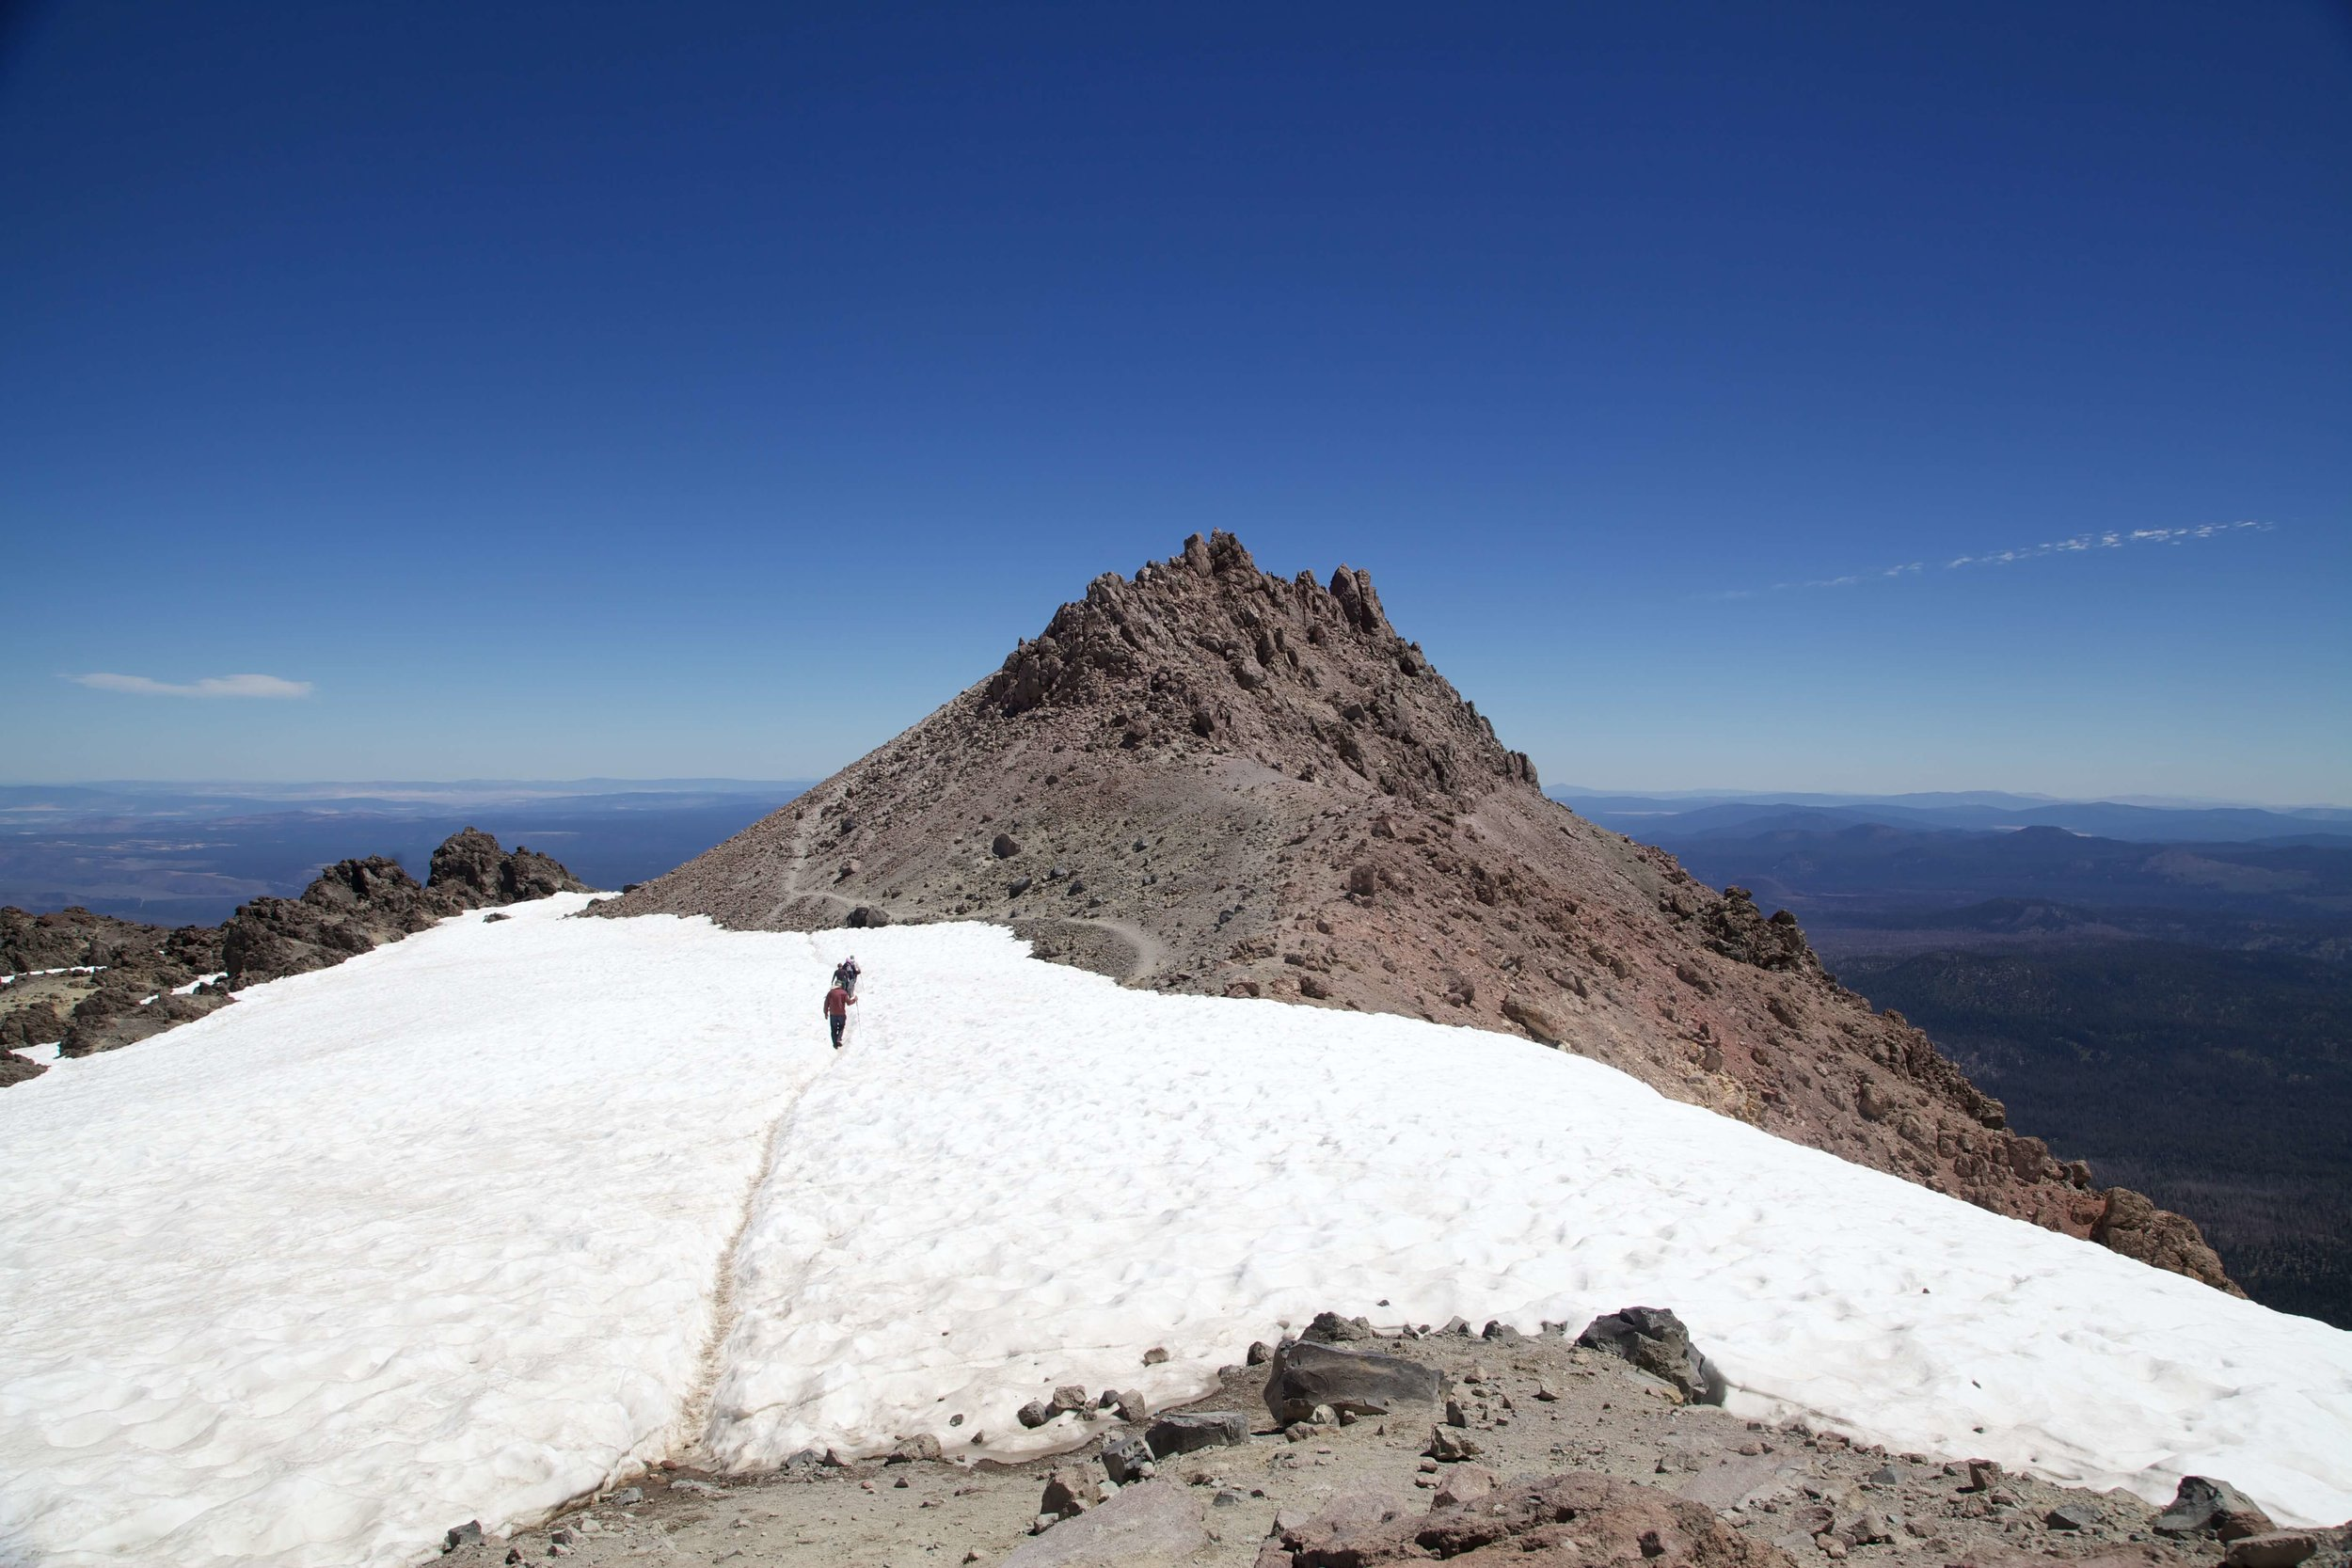 Trekking to the top of Lassen Peak